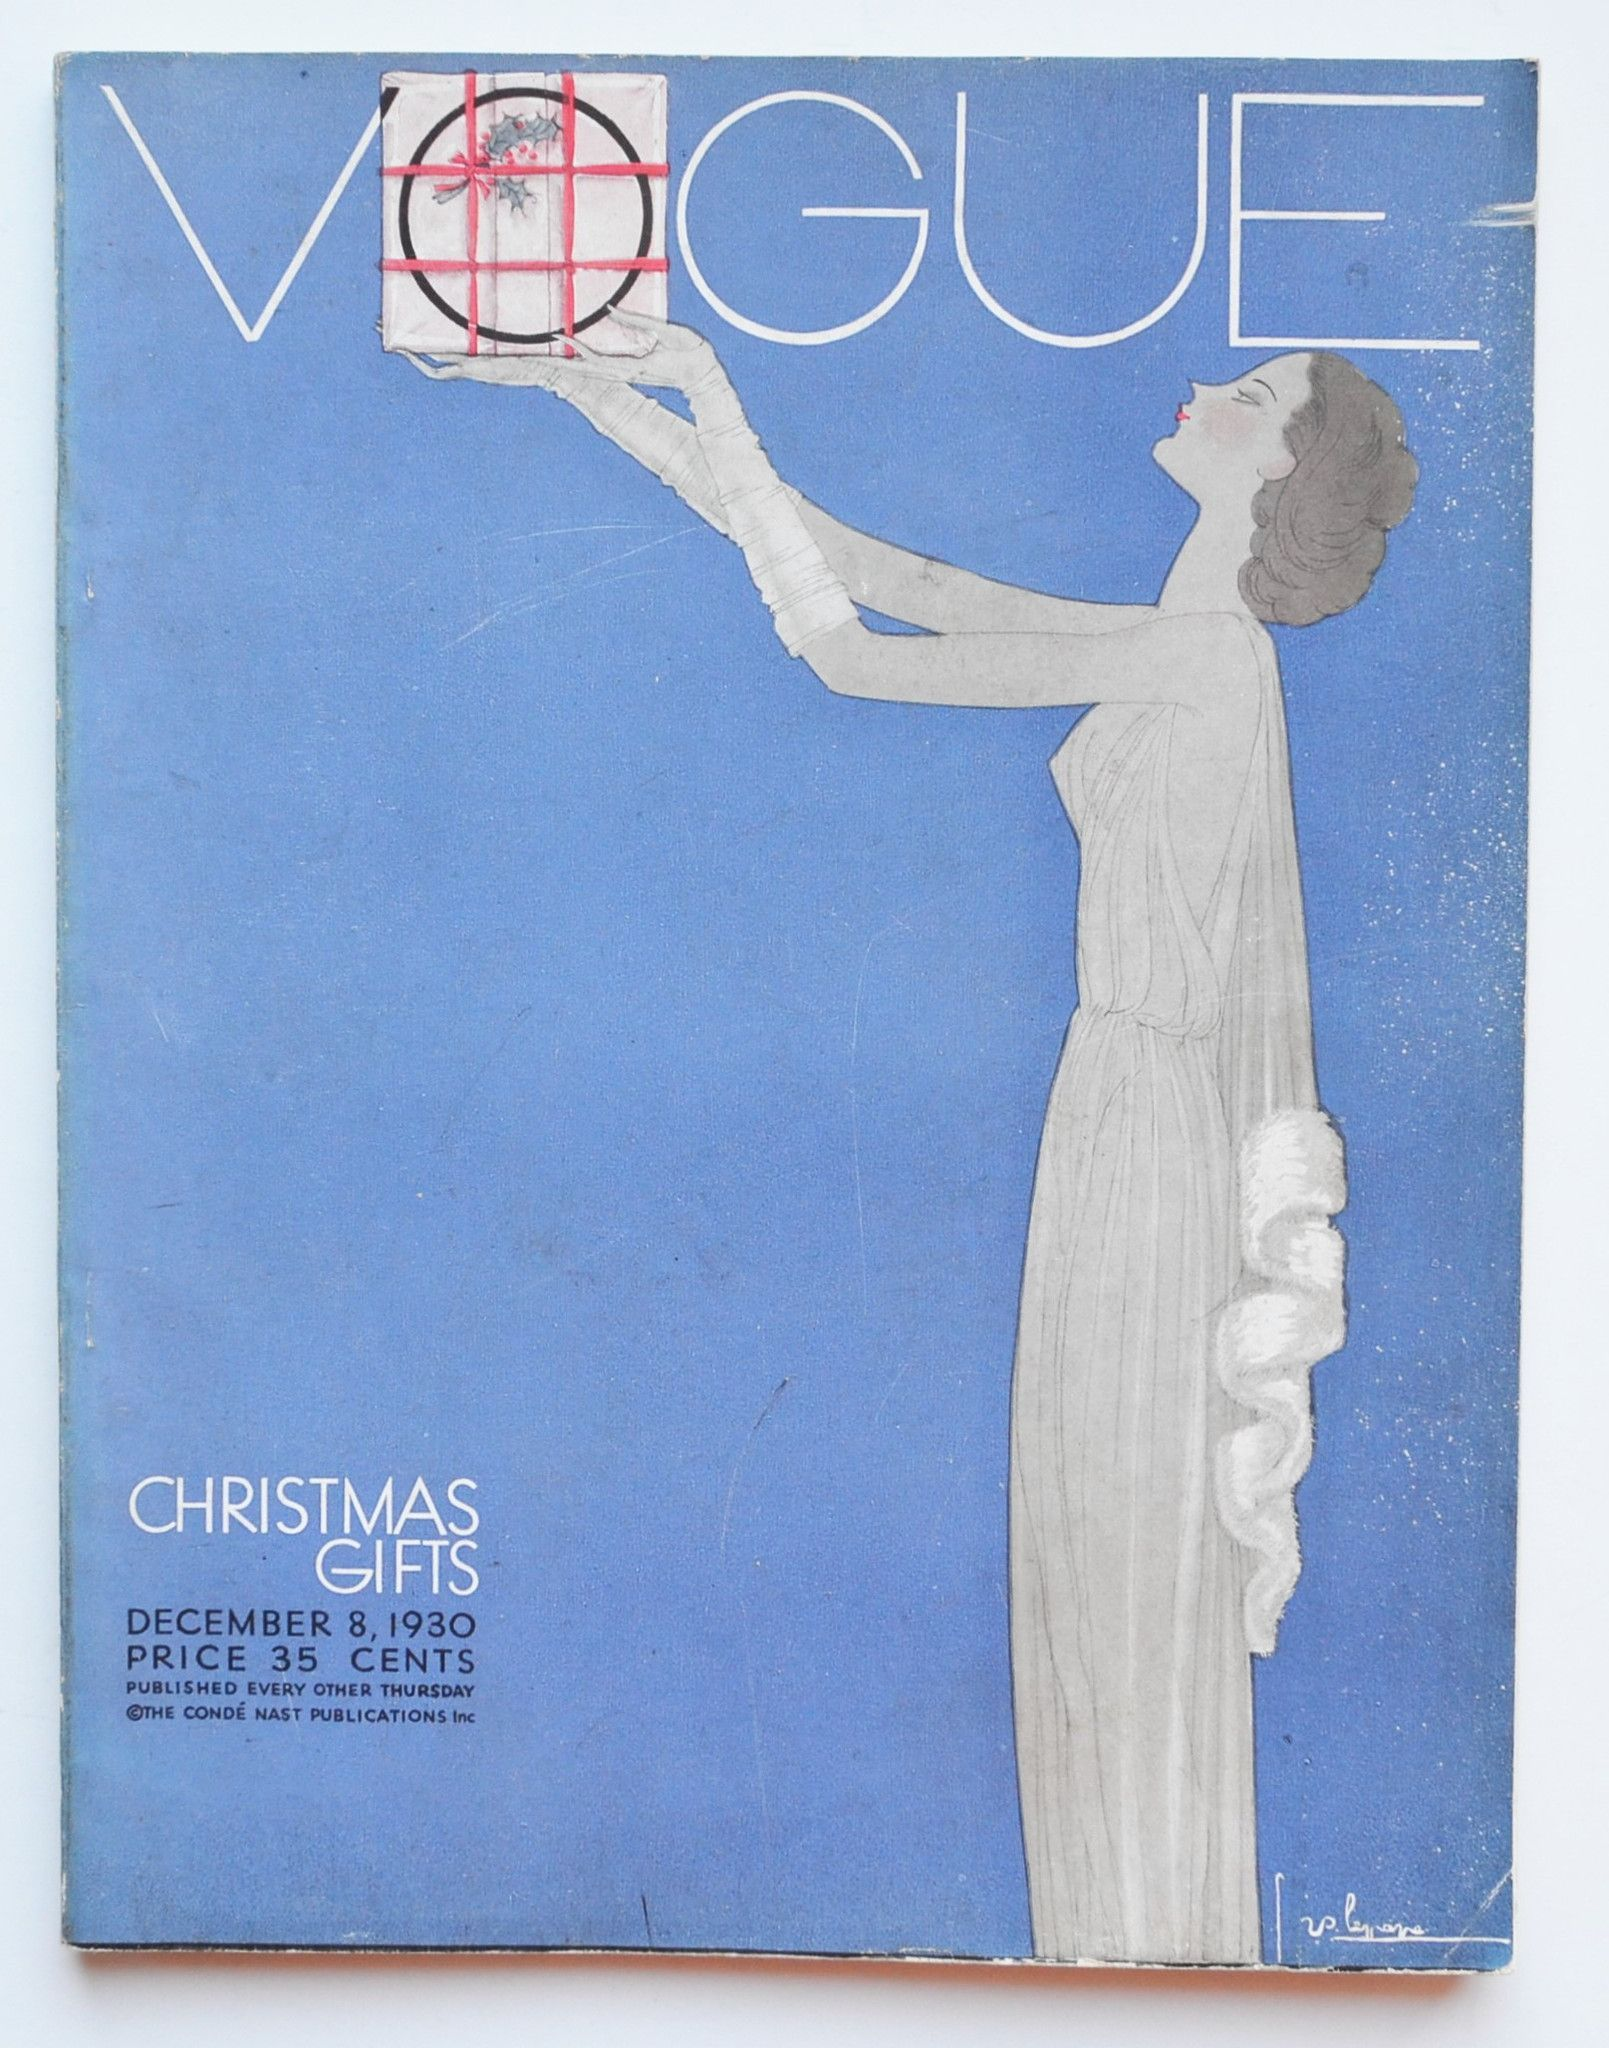 Vogue Christmas Gifts December 8 1930 Cover Design By Georges Lepape Cover Design Vogue Christmas Gifts